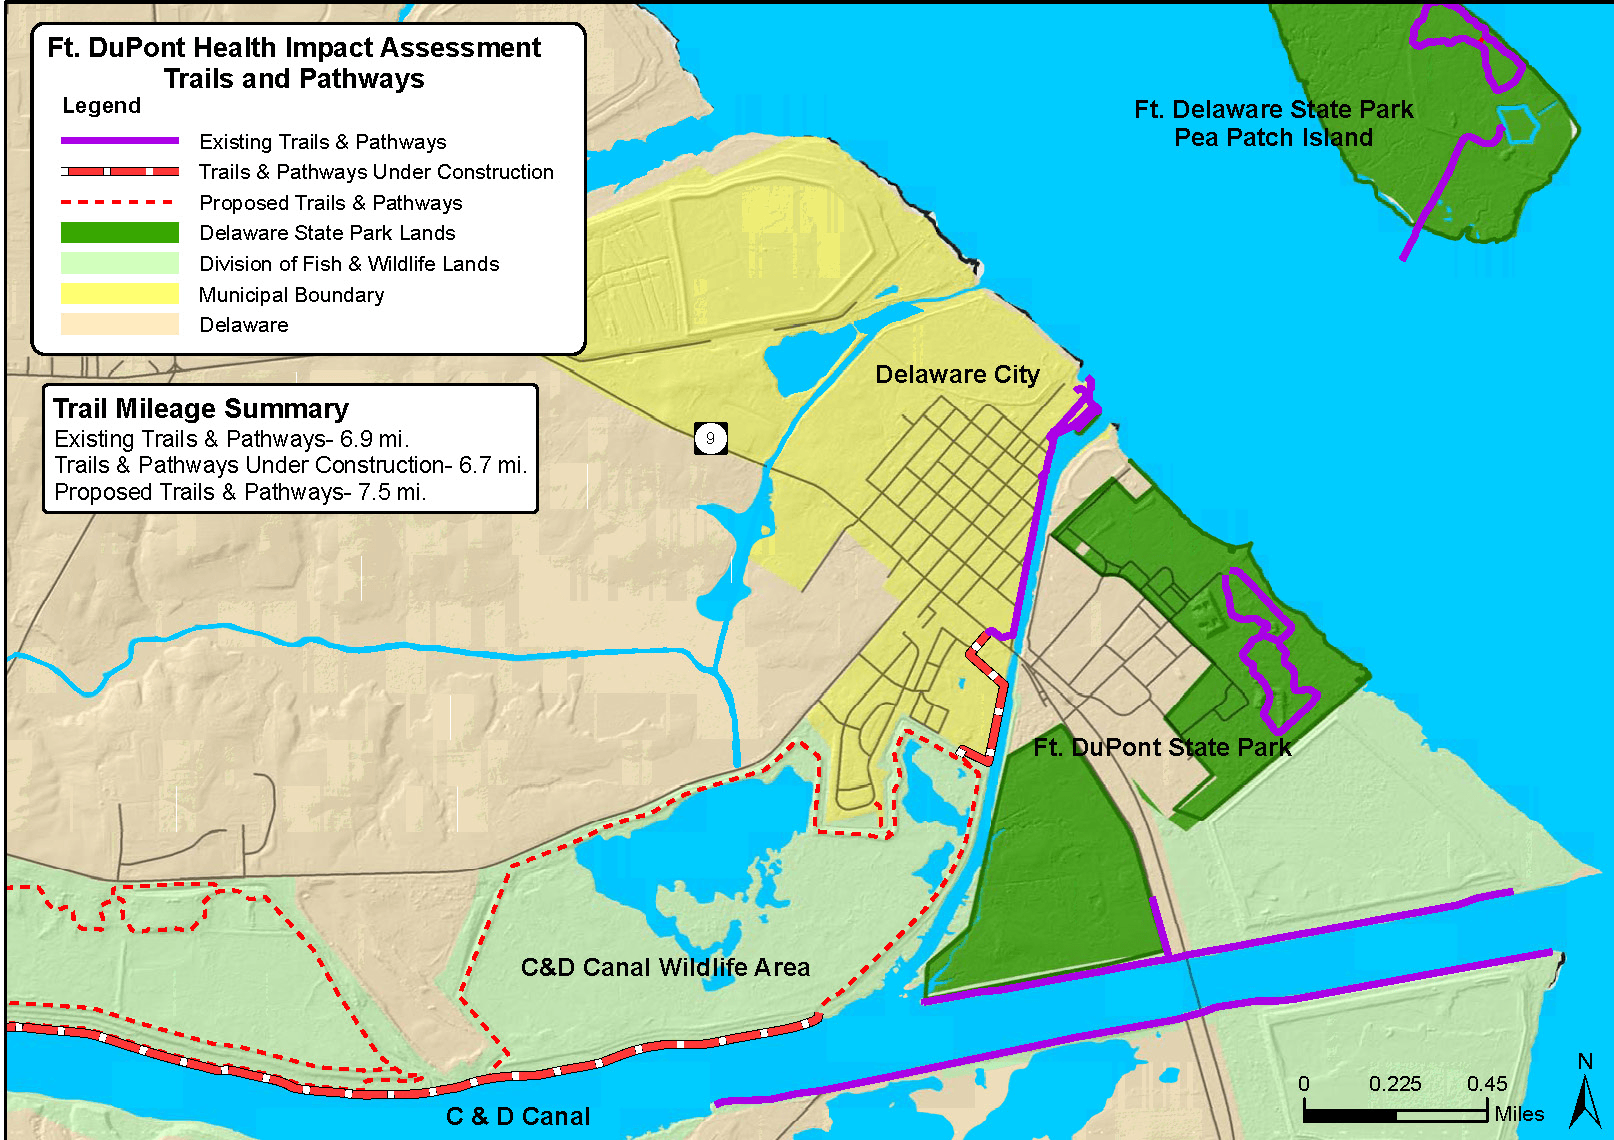 Fort DuPont Health Impact Assessment Trails and Pathways